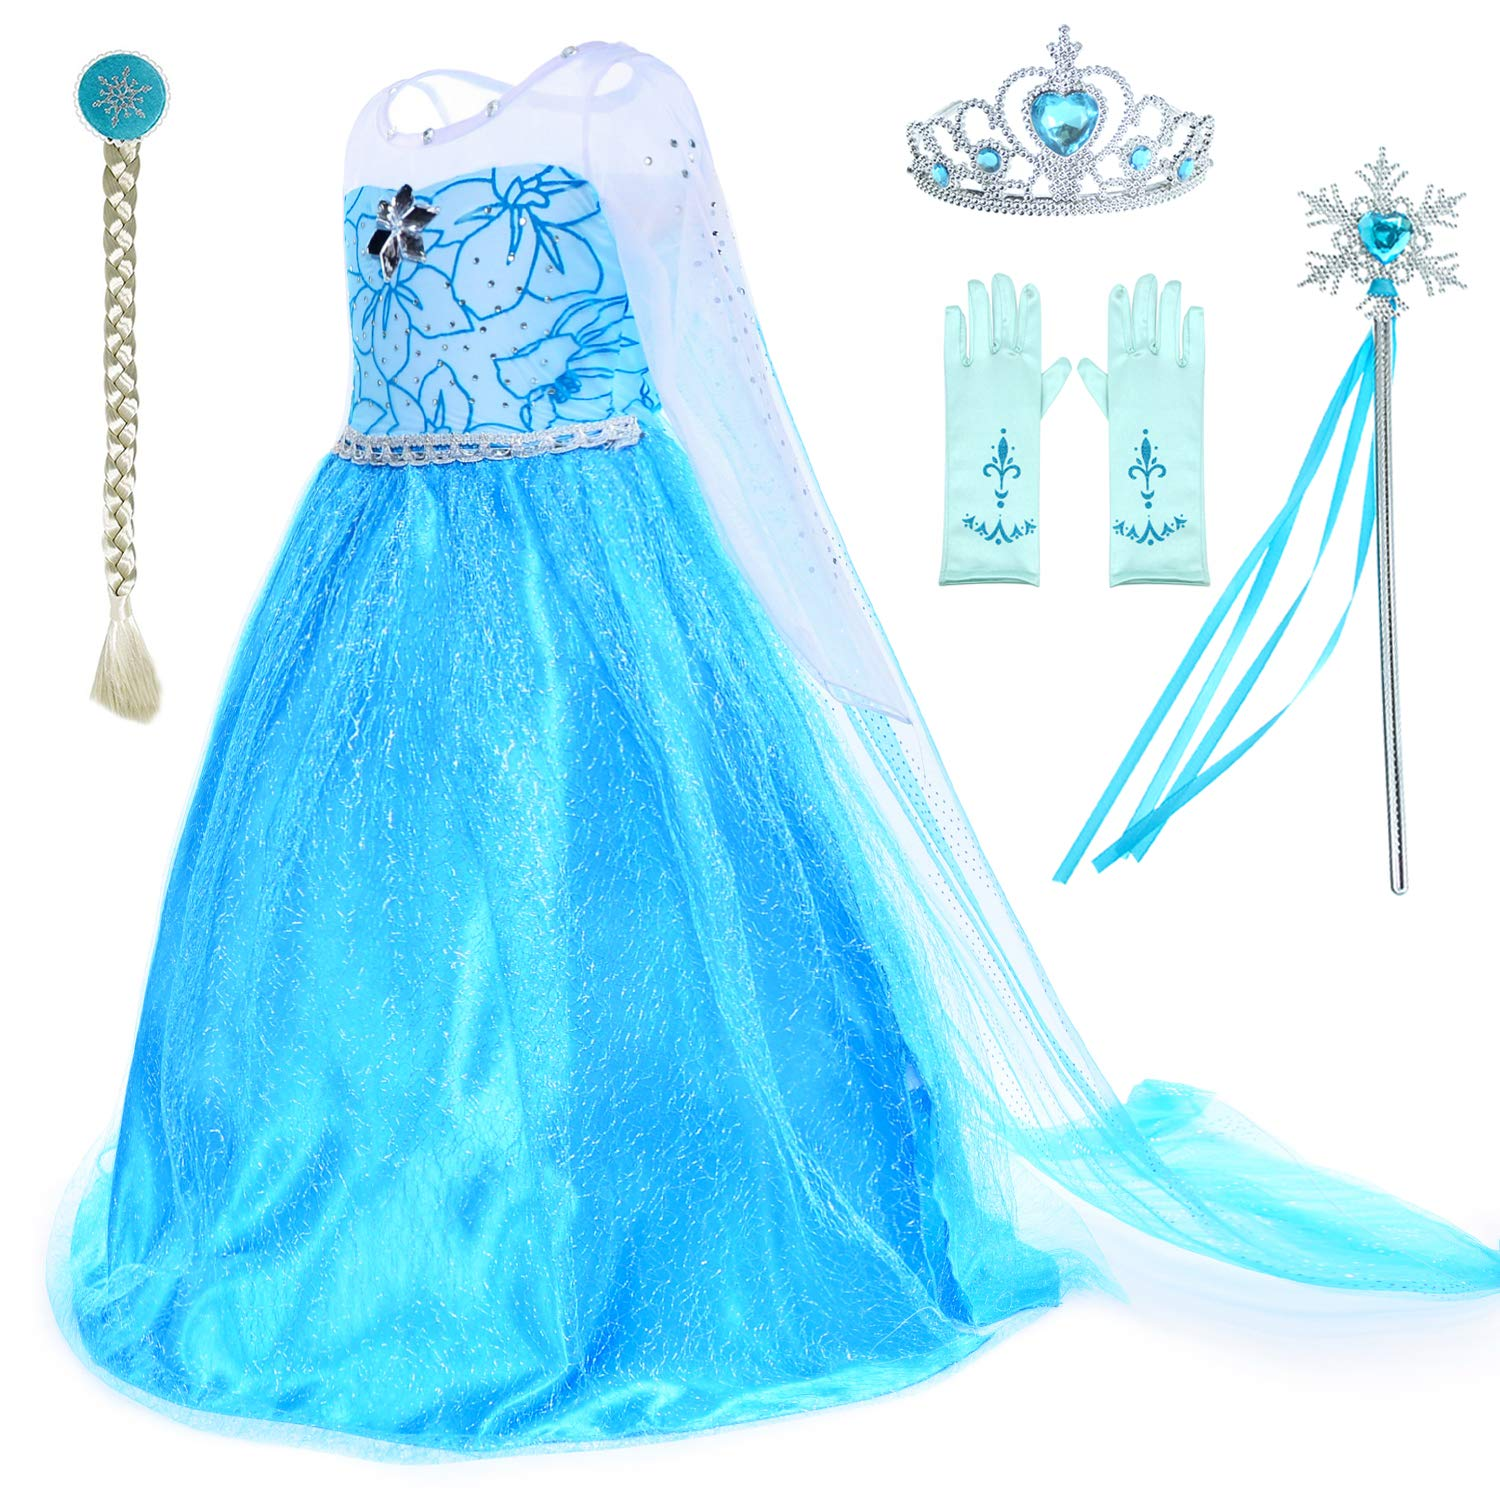 Snow Queen Princess Elsa Costumes Birthday Party Dress Up for Little Girls with Wig,Crown,Mace,Gloves Accessories 3T 4T (110cm)